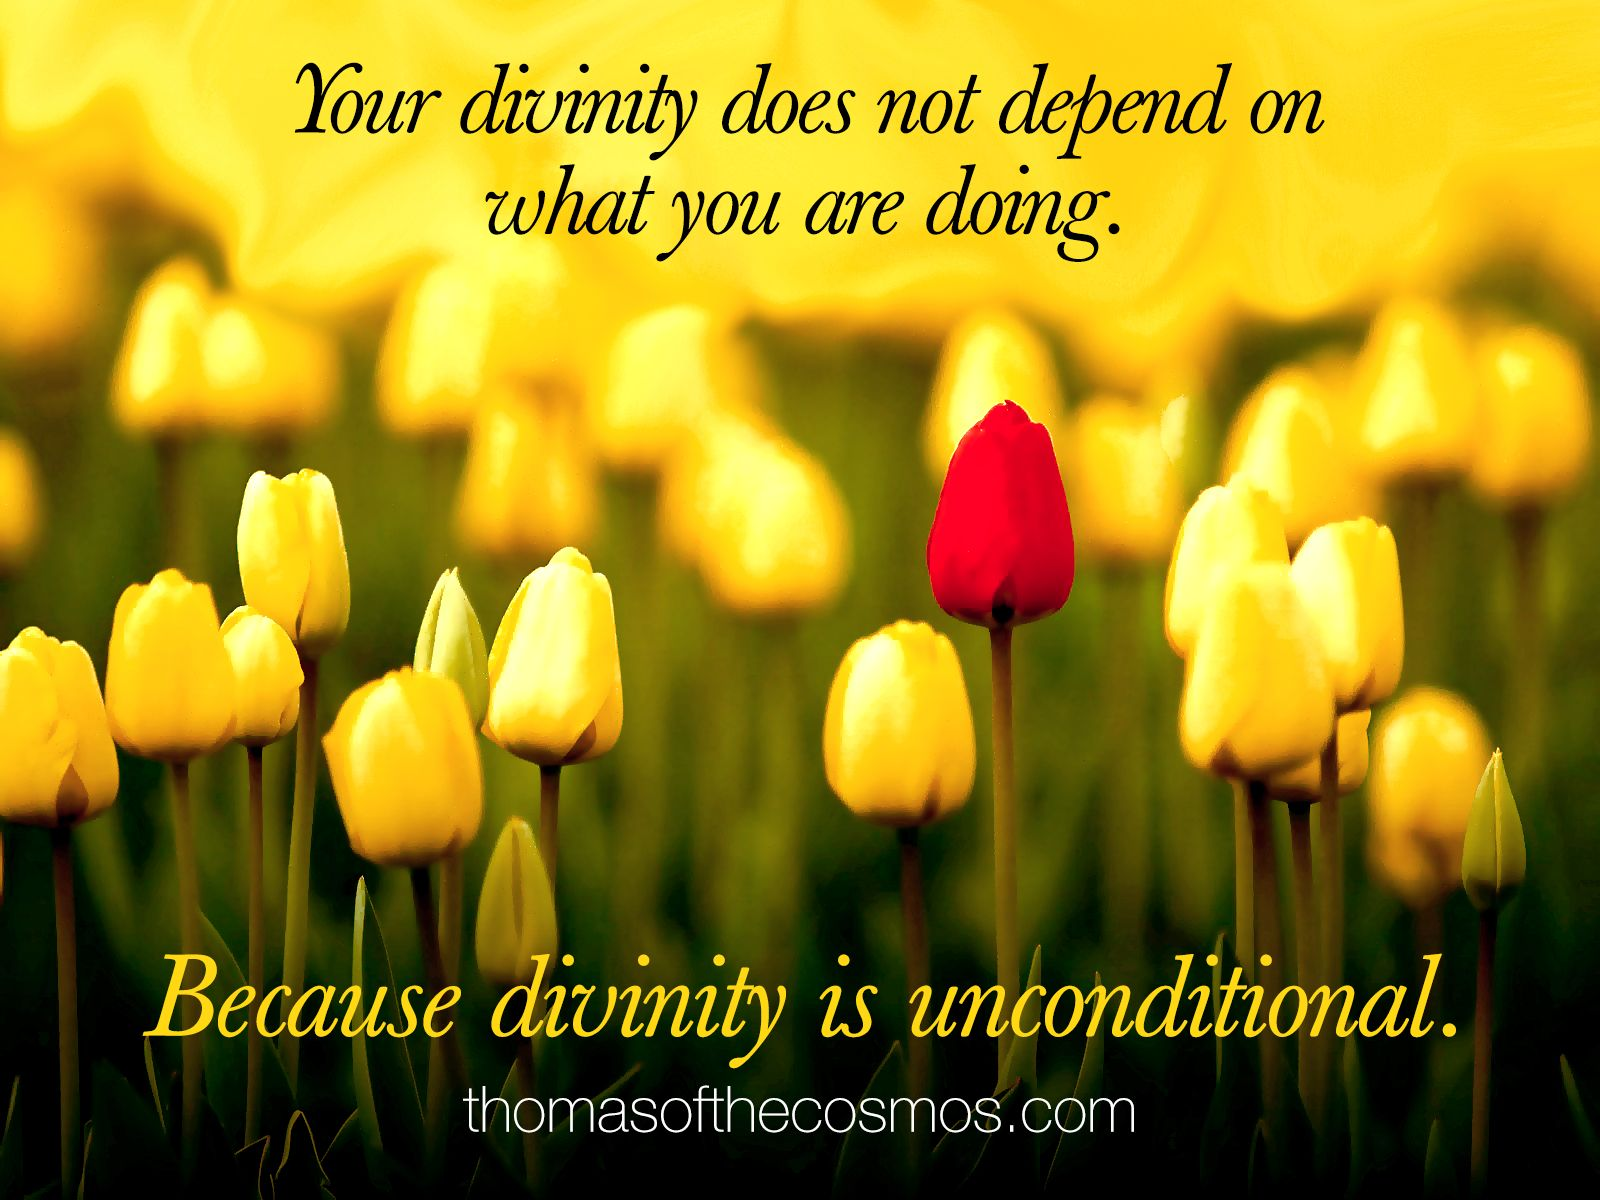 Your divinity does not depend on what you are doing. Because divinity is unconditional.